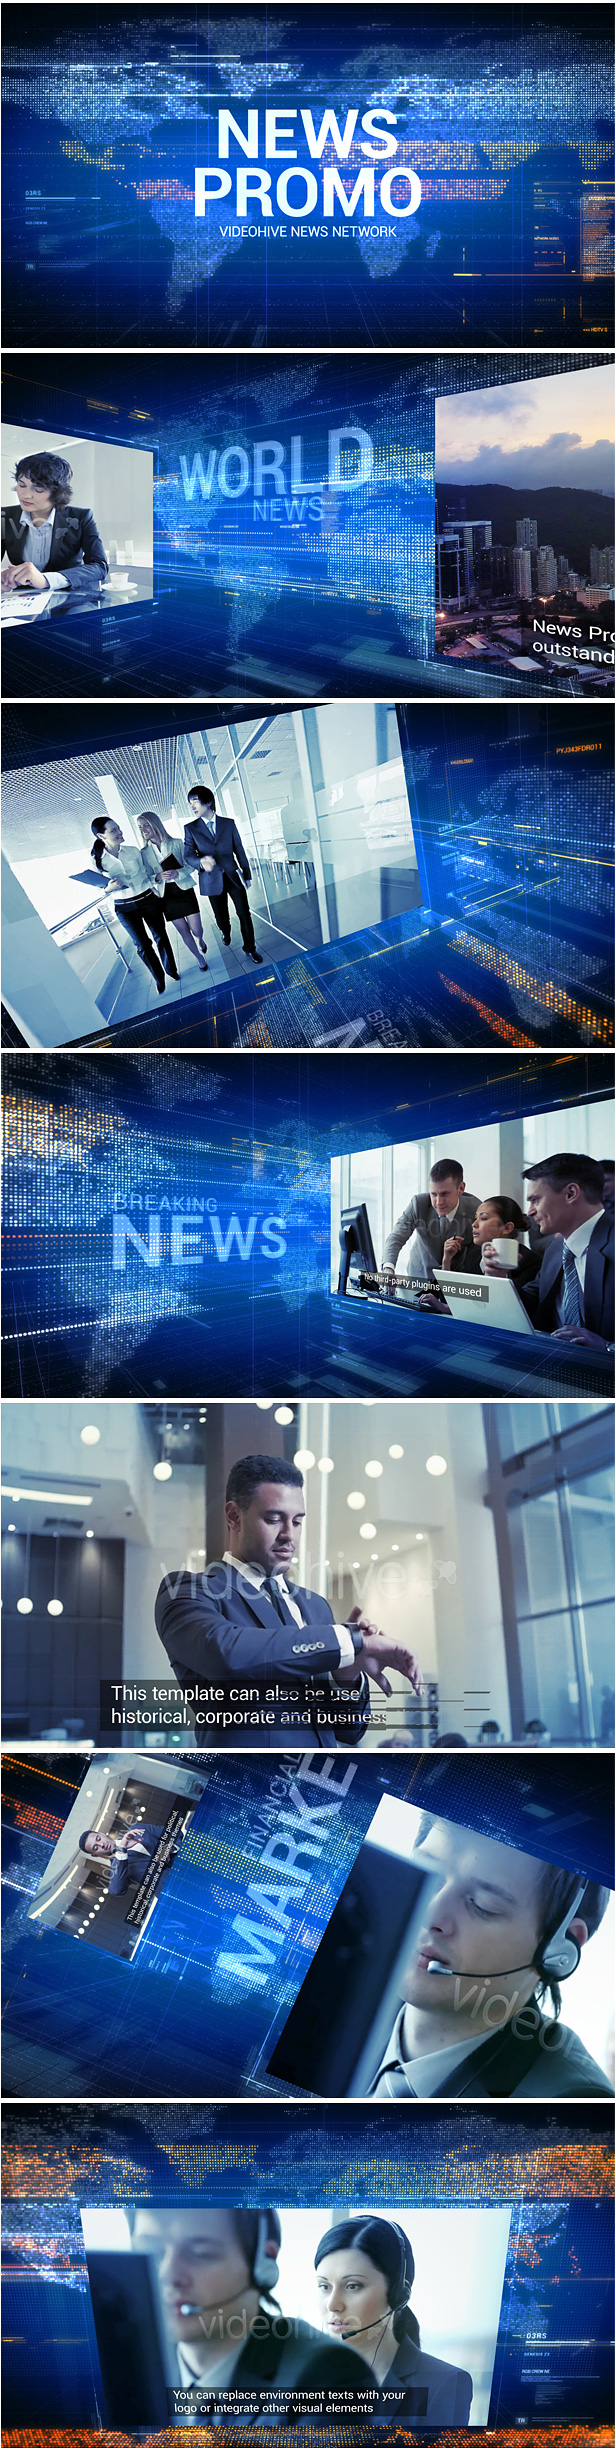 News Promo After Effects Template